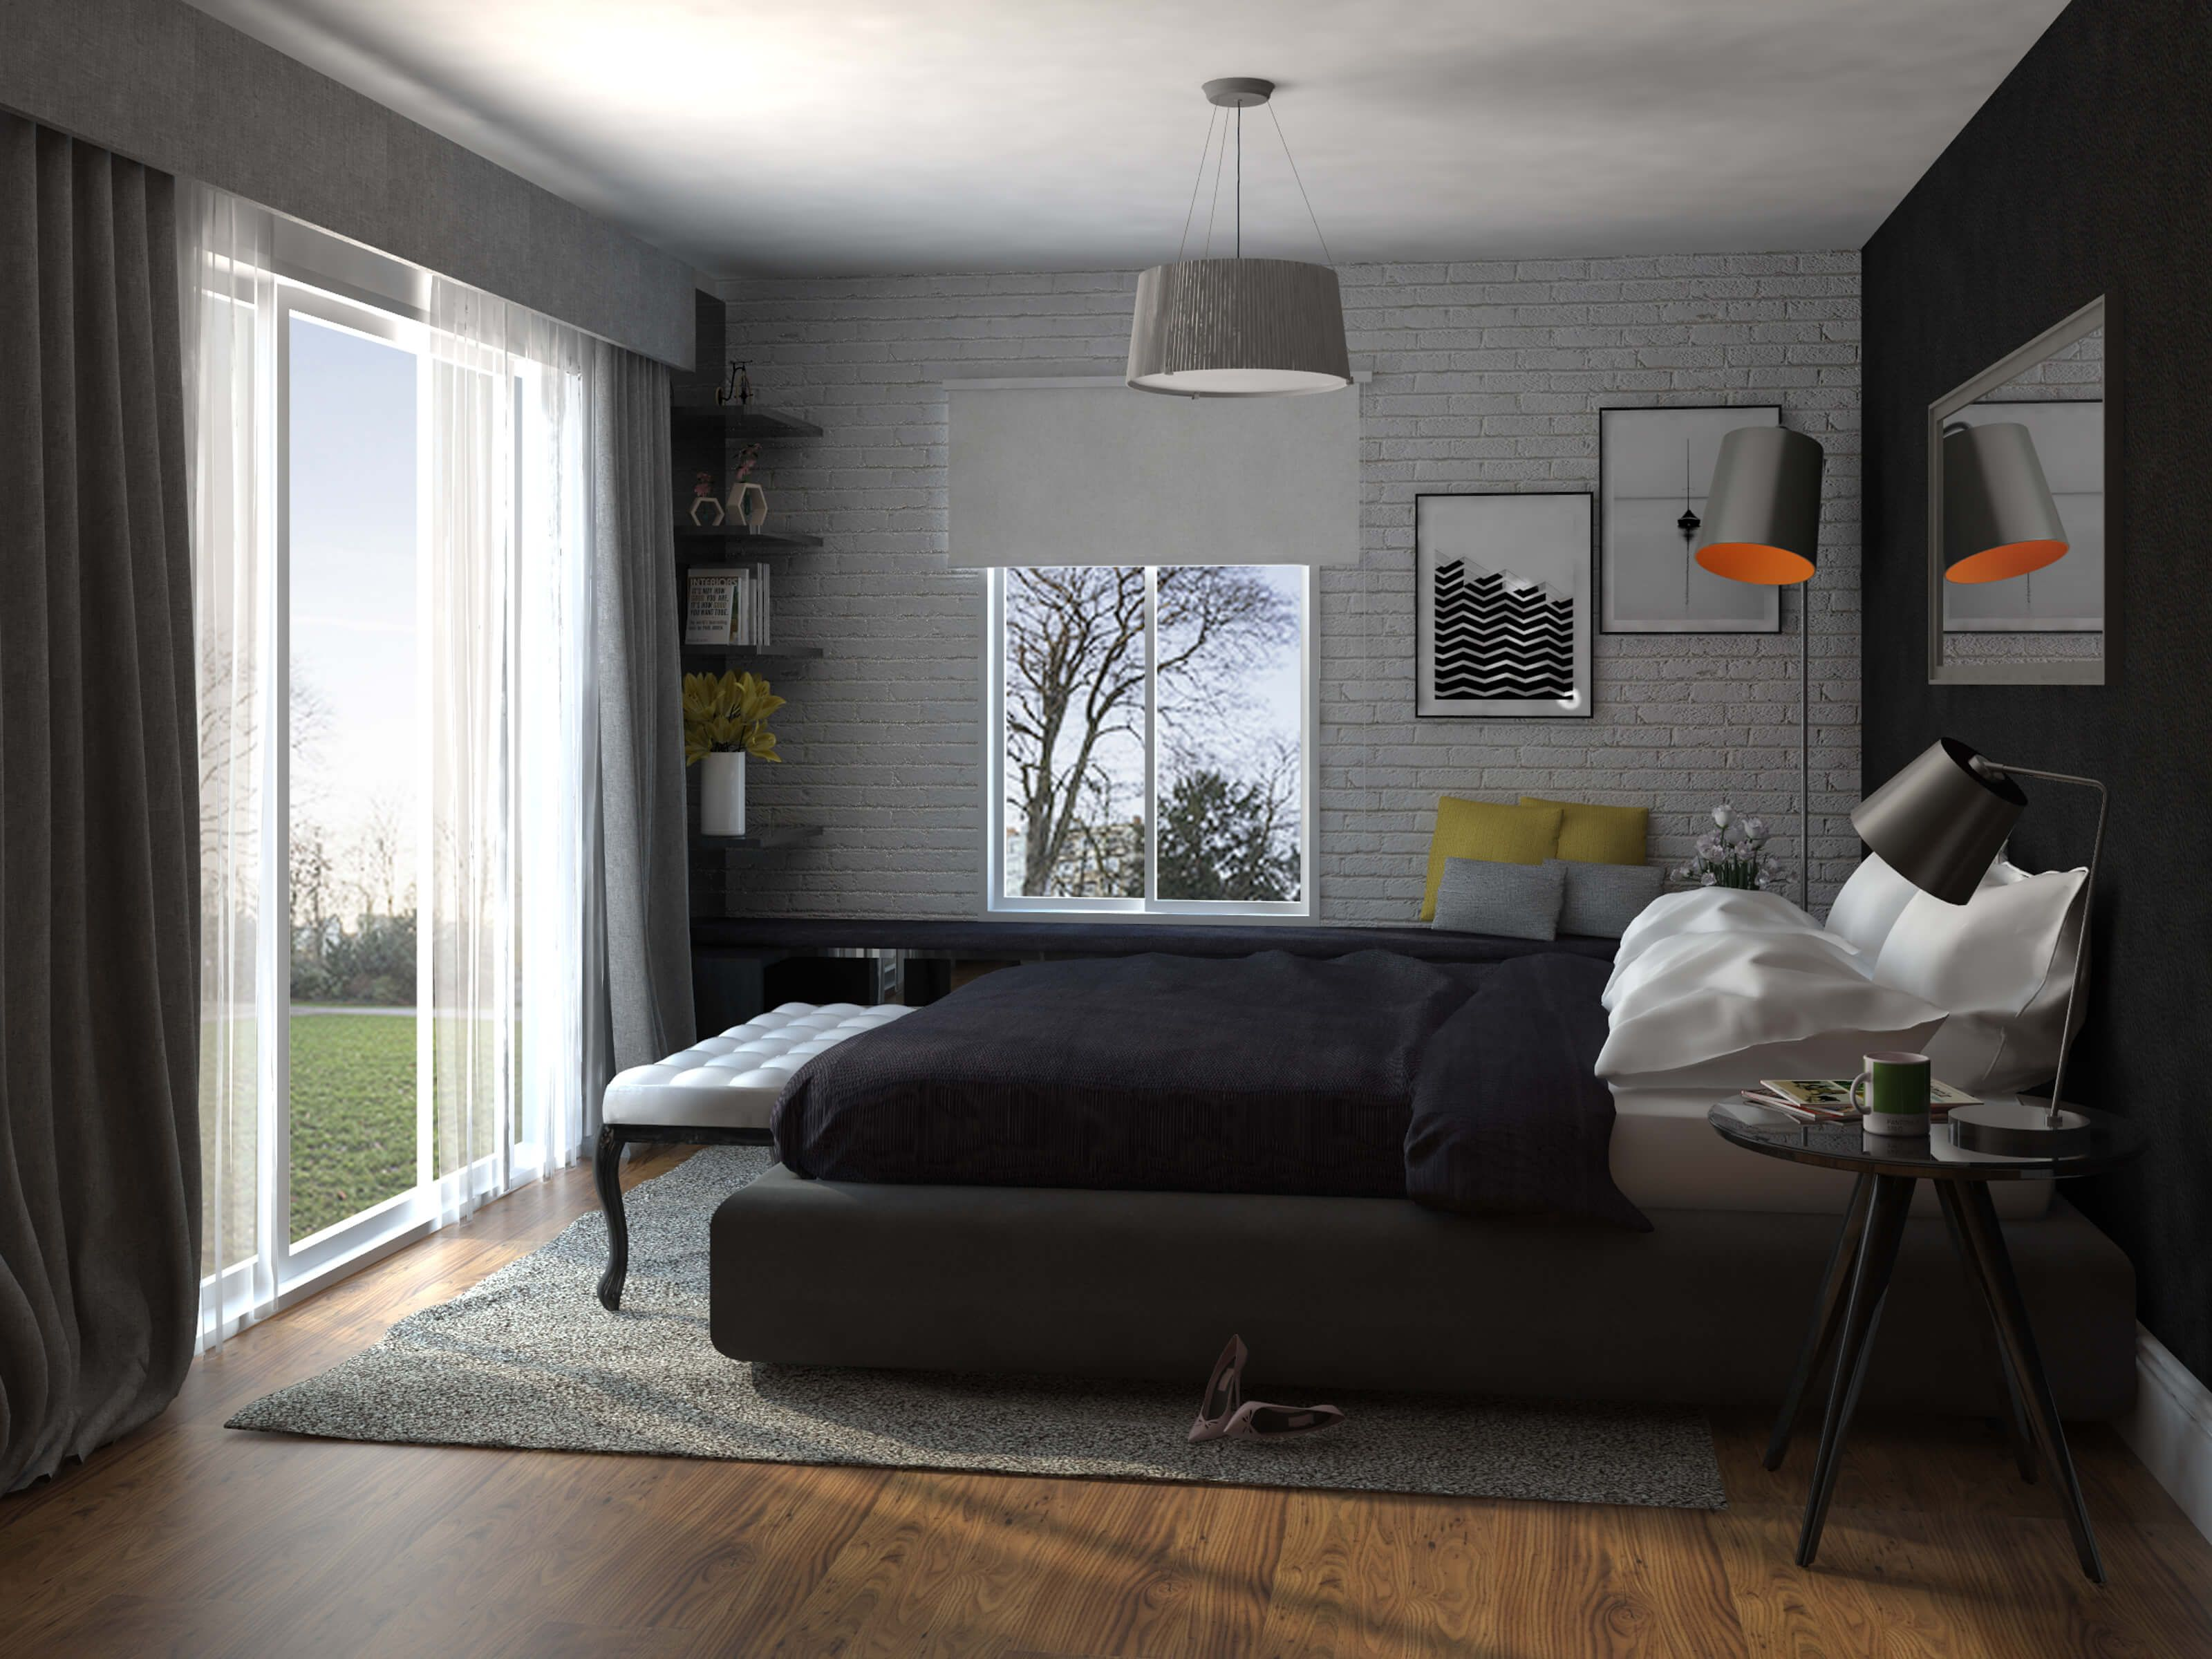 Awesome before and after bedroom renovation ideas | Bedrooms ...